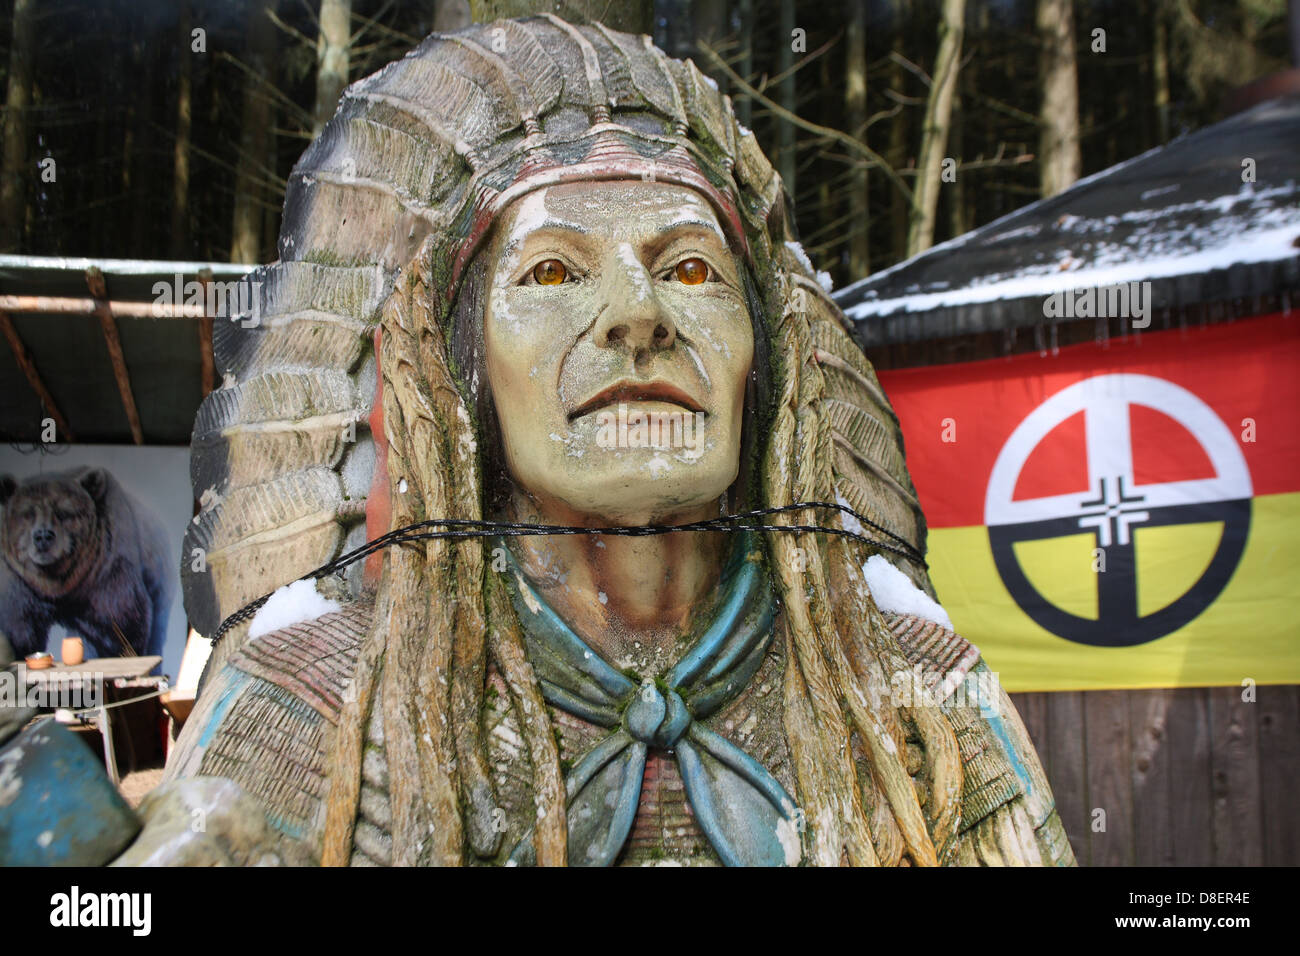 A wooden depiction of a West Indian wearing a feather headdress. - Stock Image